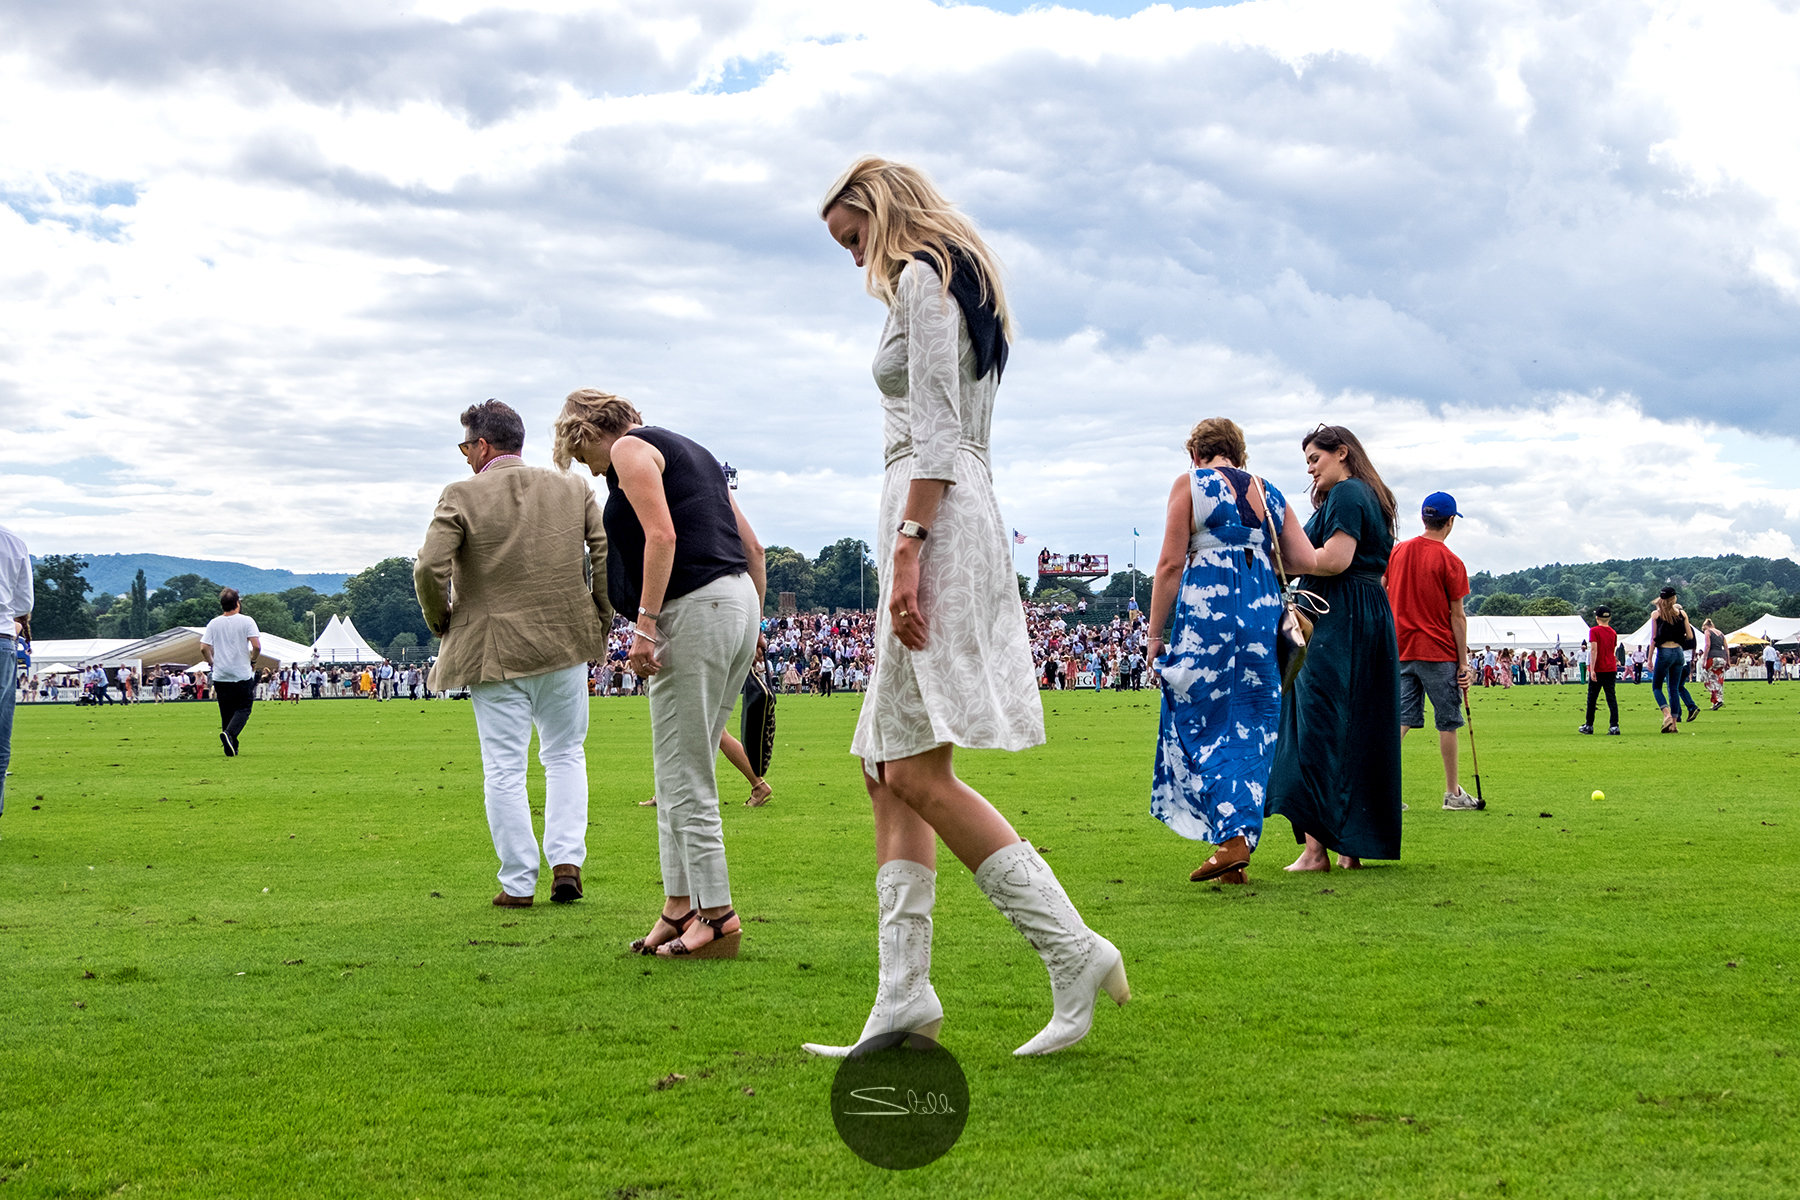 Stella Scordellis Jaeger-LeCoultre Gold Cup 2016 21 Watermarked.jpg